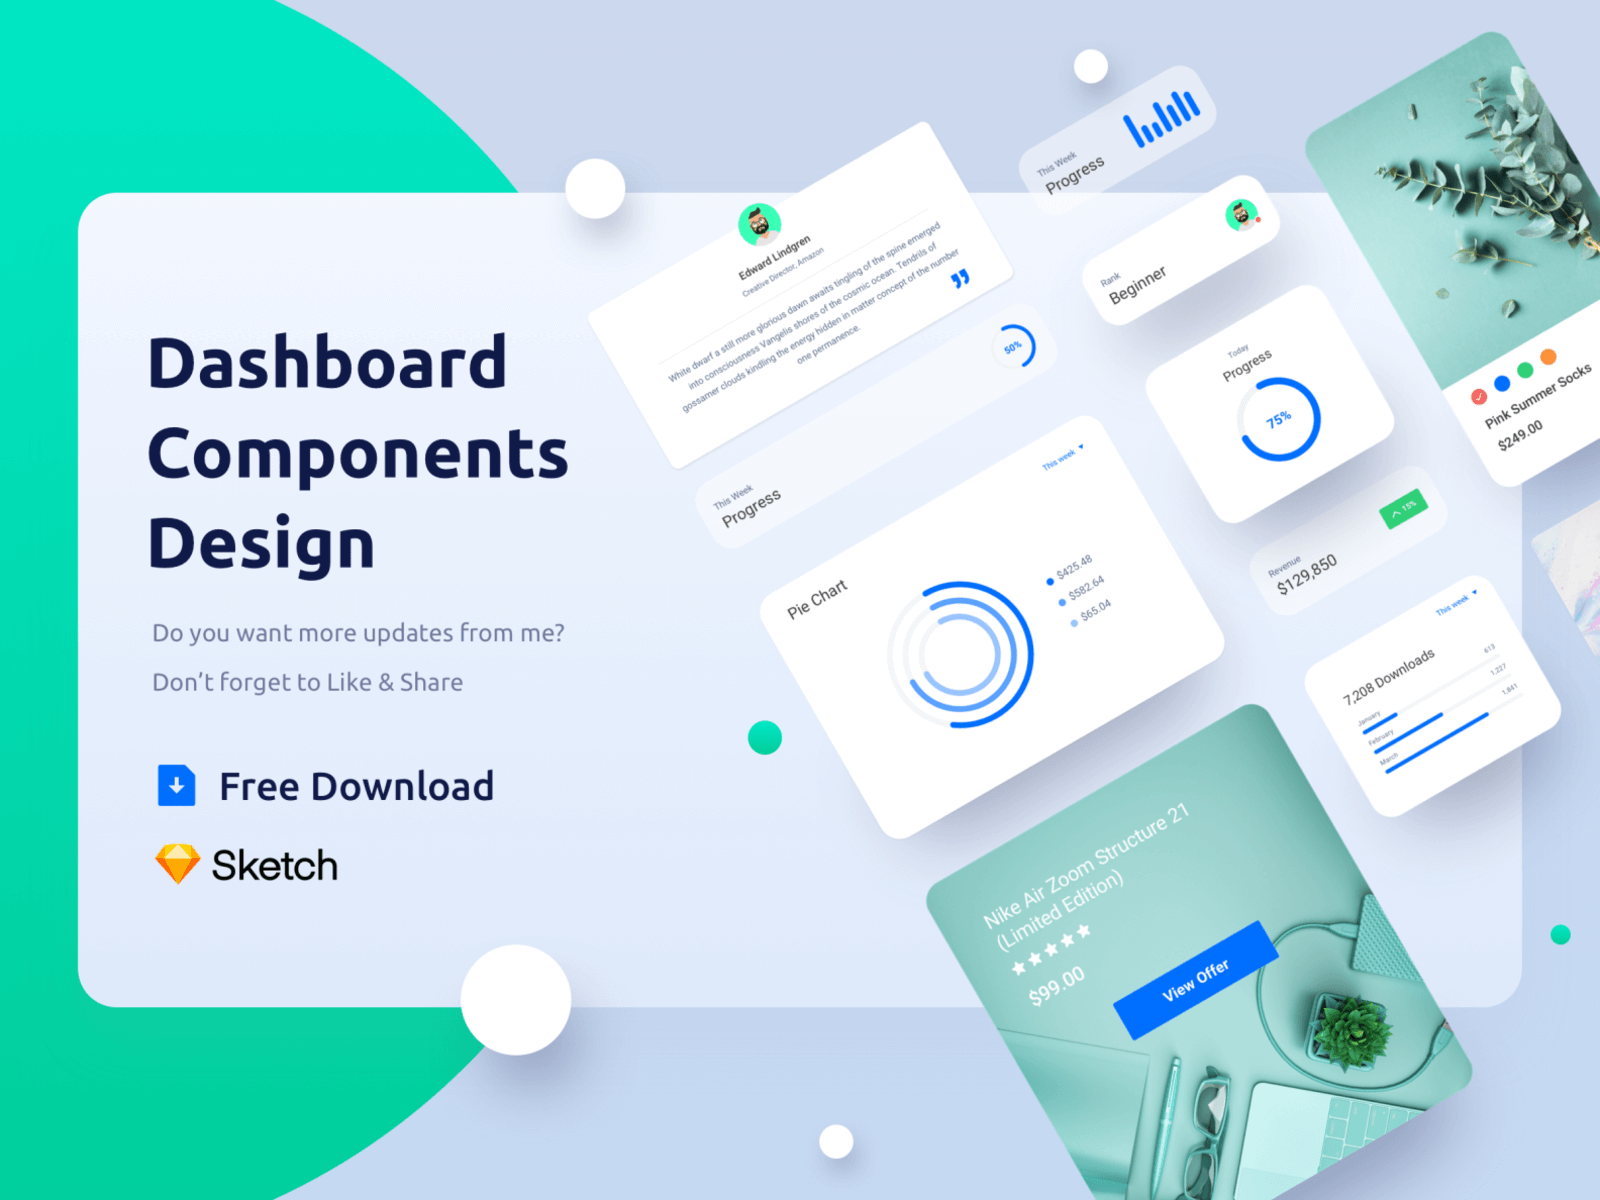 Freebie Dashboard Components Design cover image